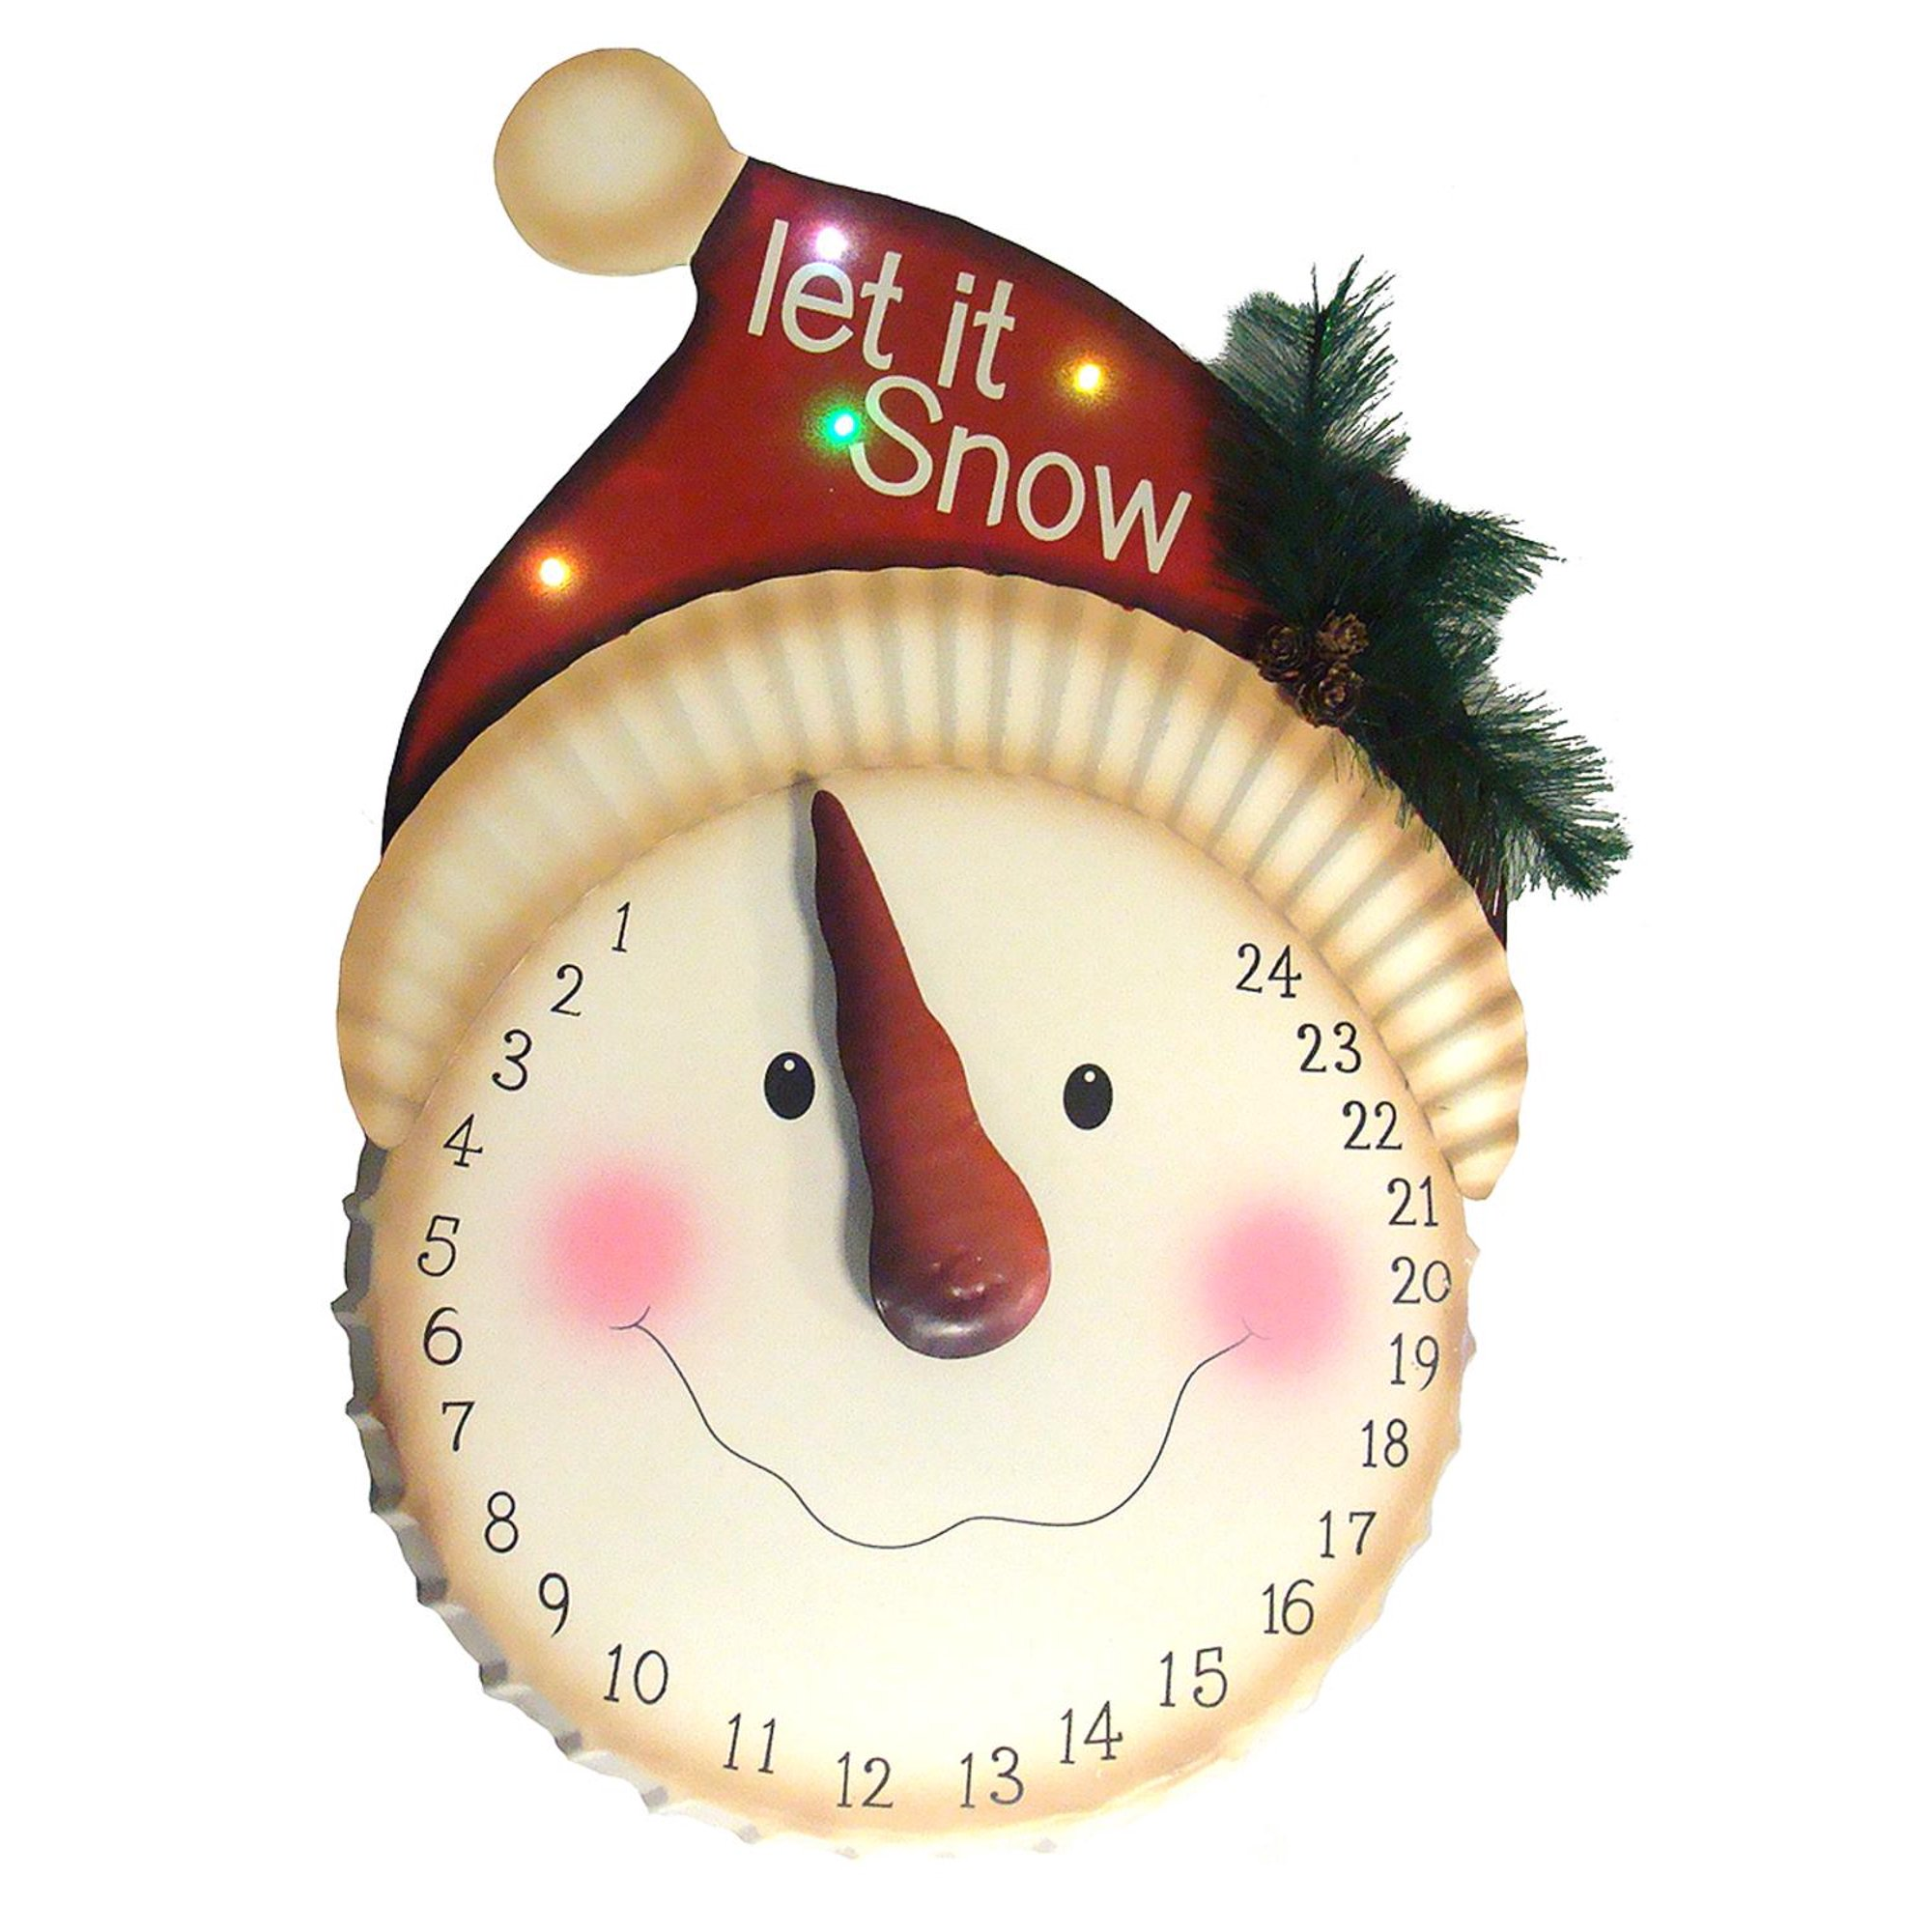 How Many Days Left Until Christmas.21 Led Lighted Let It Snow Snowman Face Christmas Countdown Advent Calendar